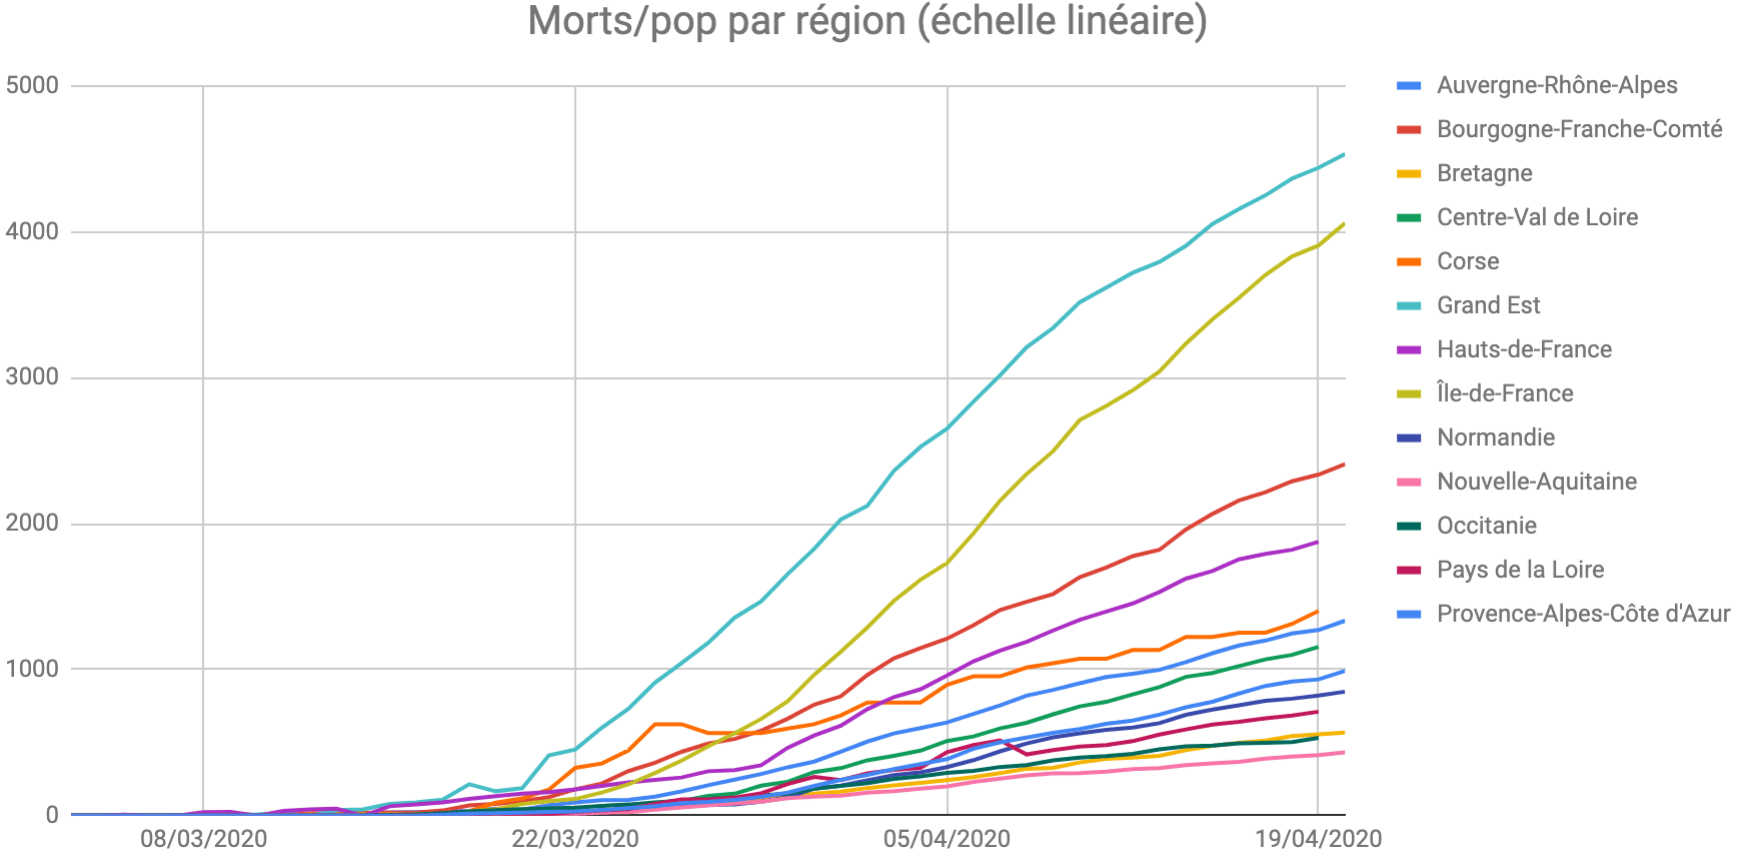 Morts par région